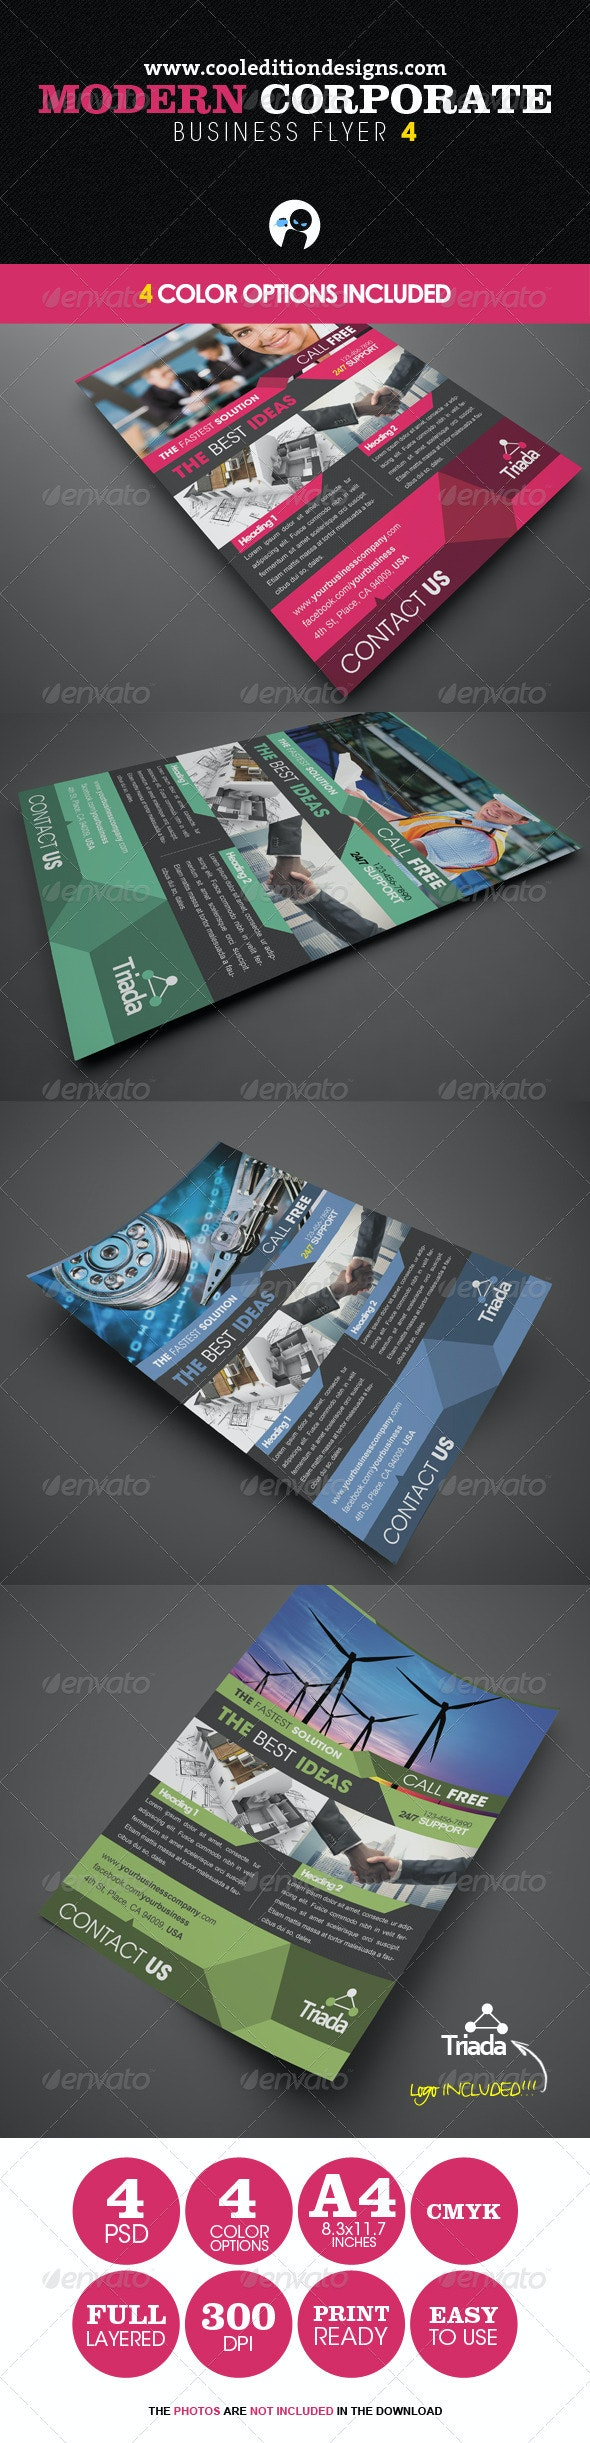 Modern Corporate Business Flyer 4 - Corporate Flyers